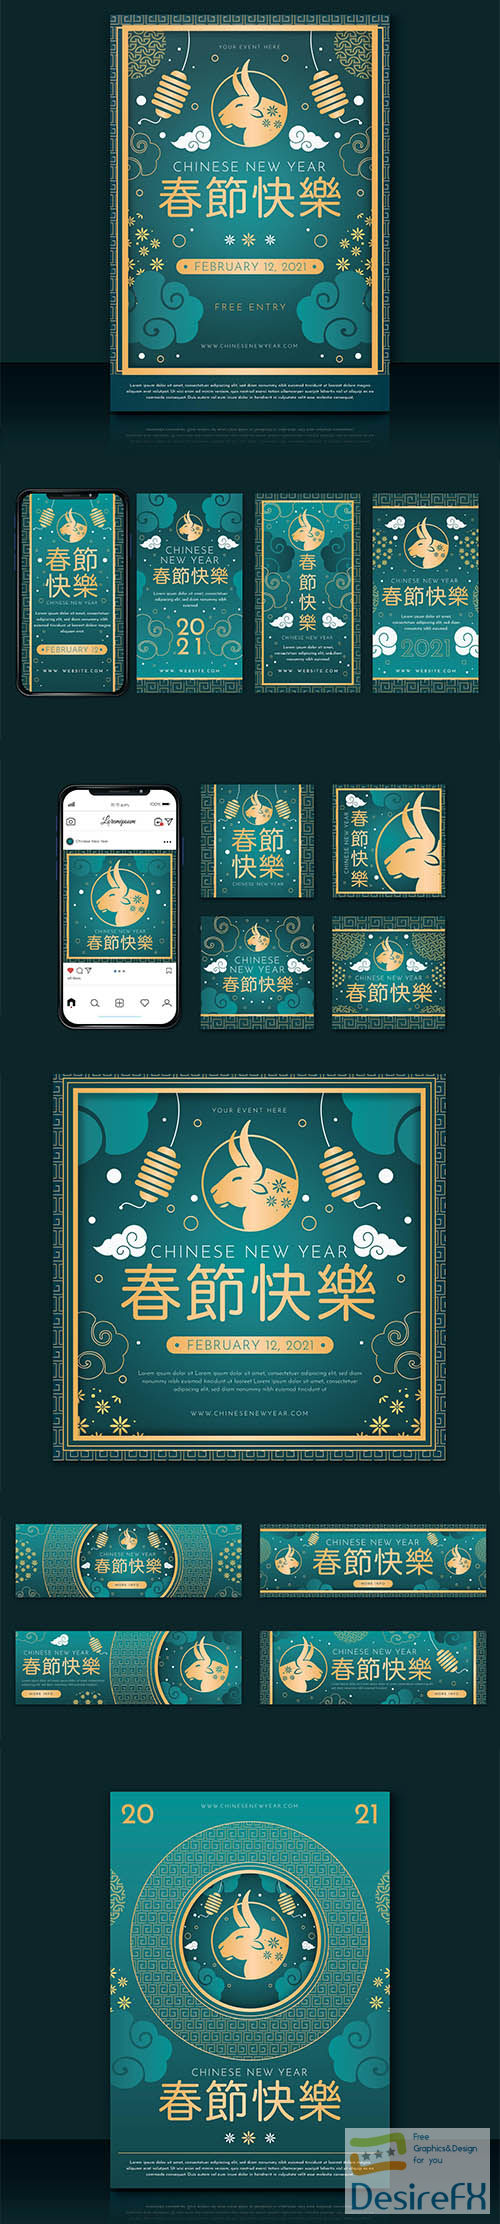 Chinese new year banners template set